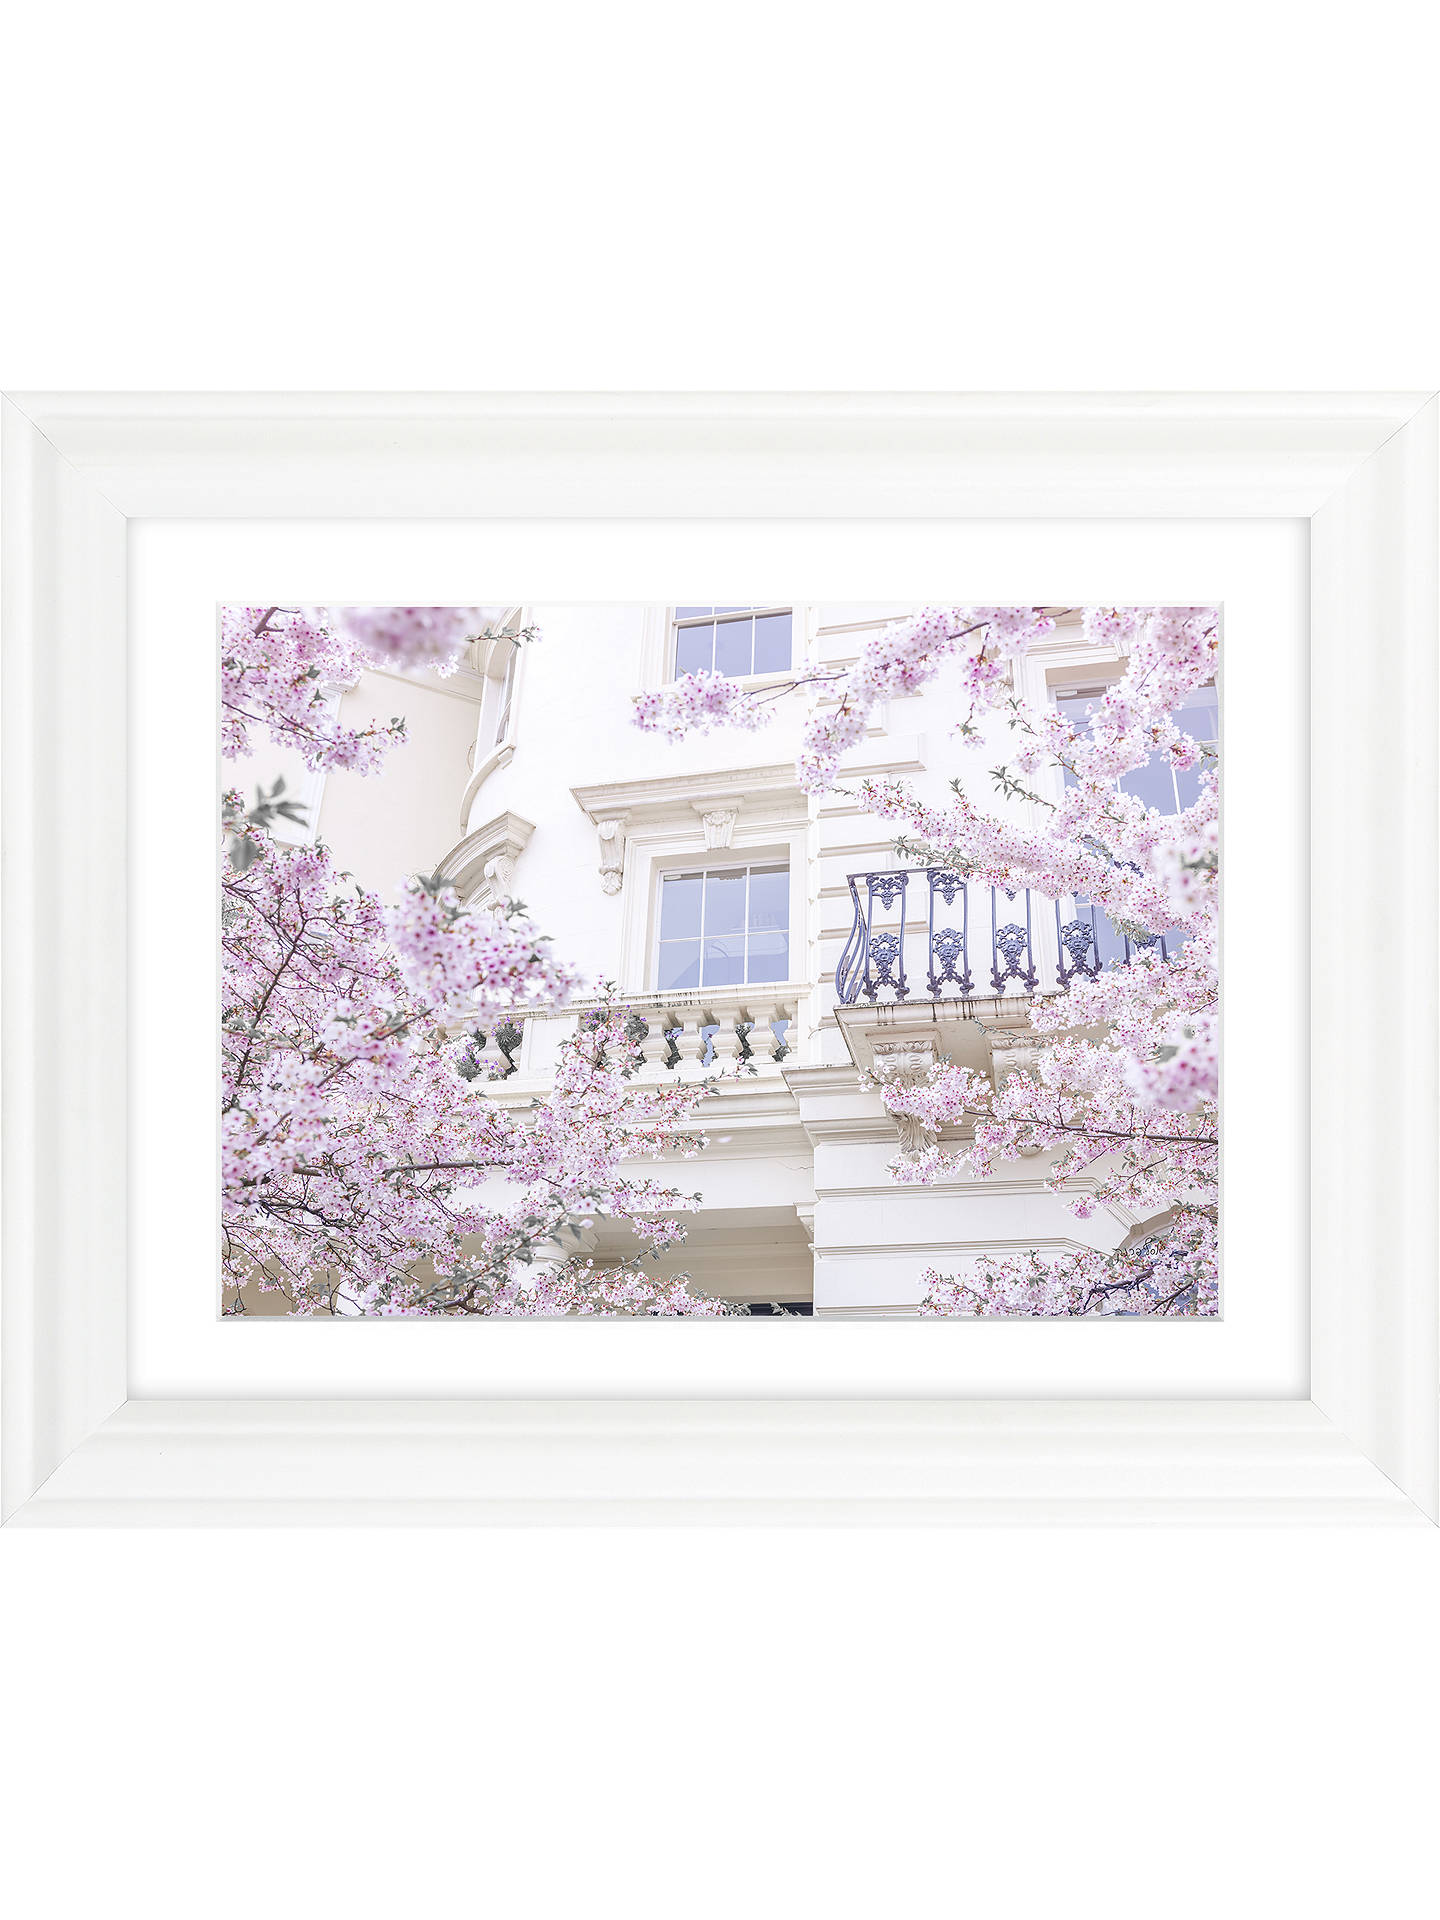 Buy Assaf Frank - London Blossom I Framed Print & Mount, 37 x 47cm Online at johnlewis.com